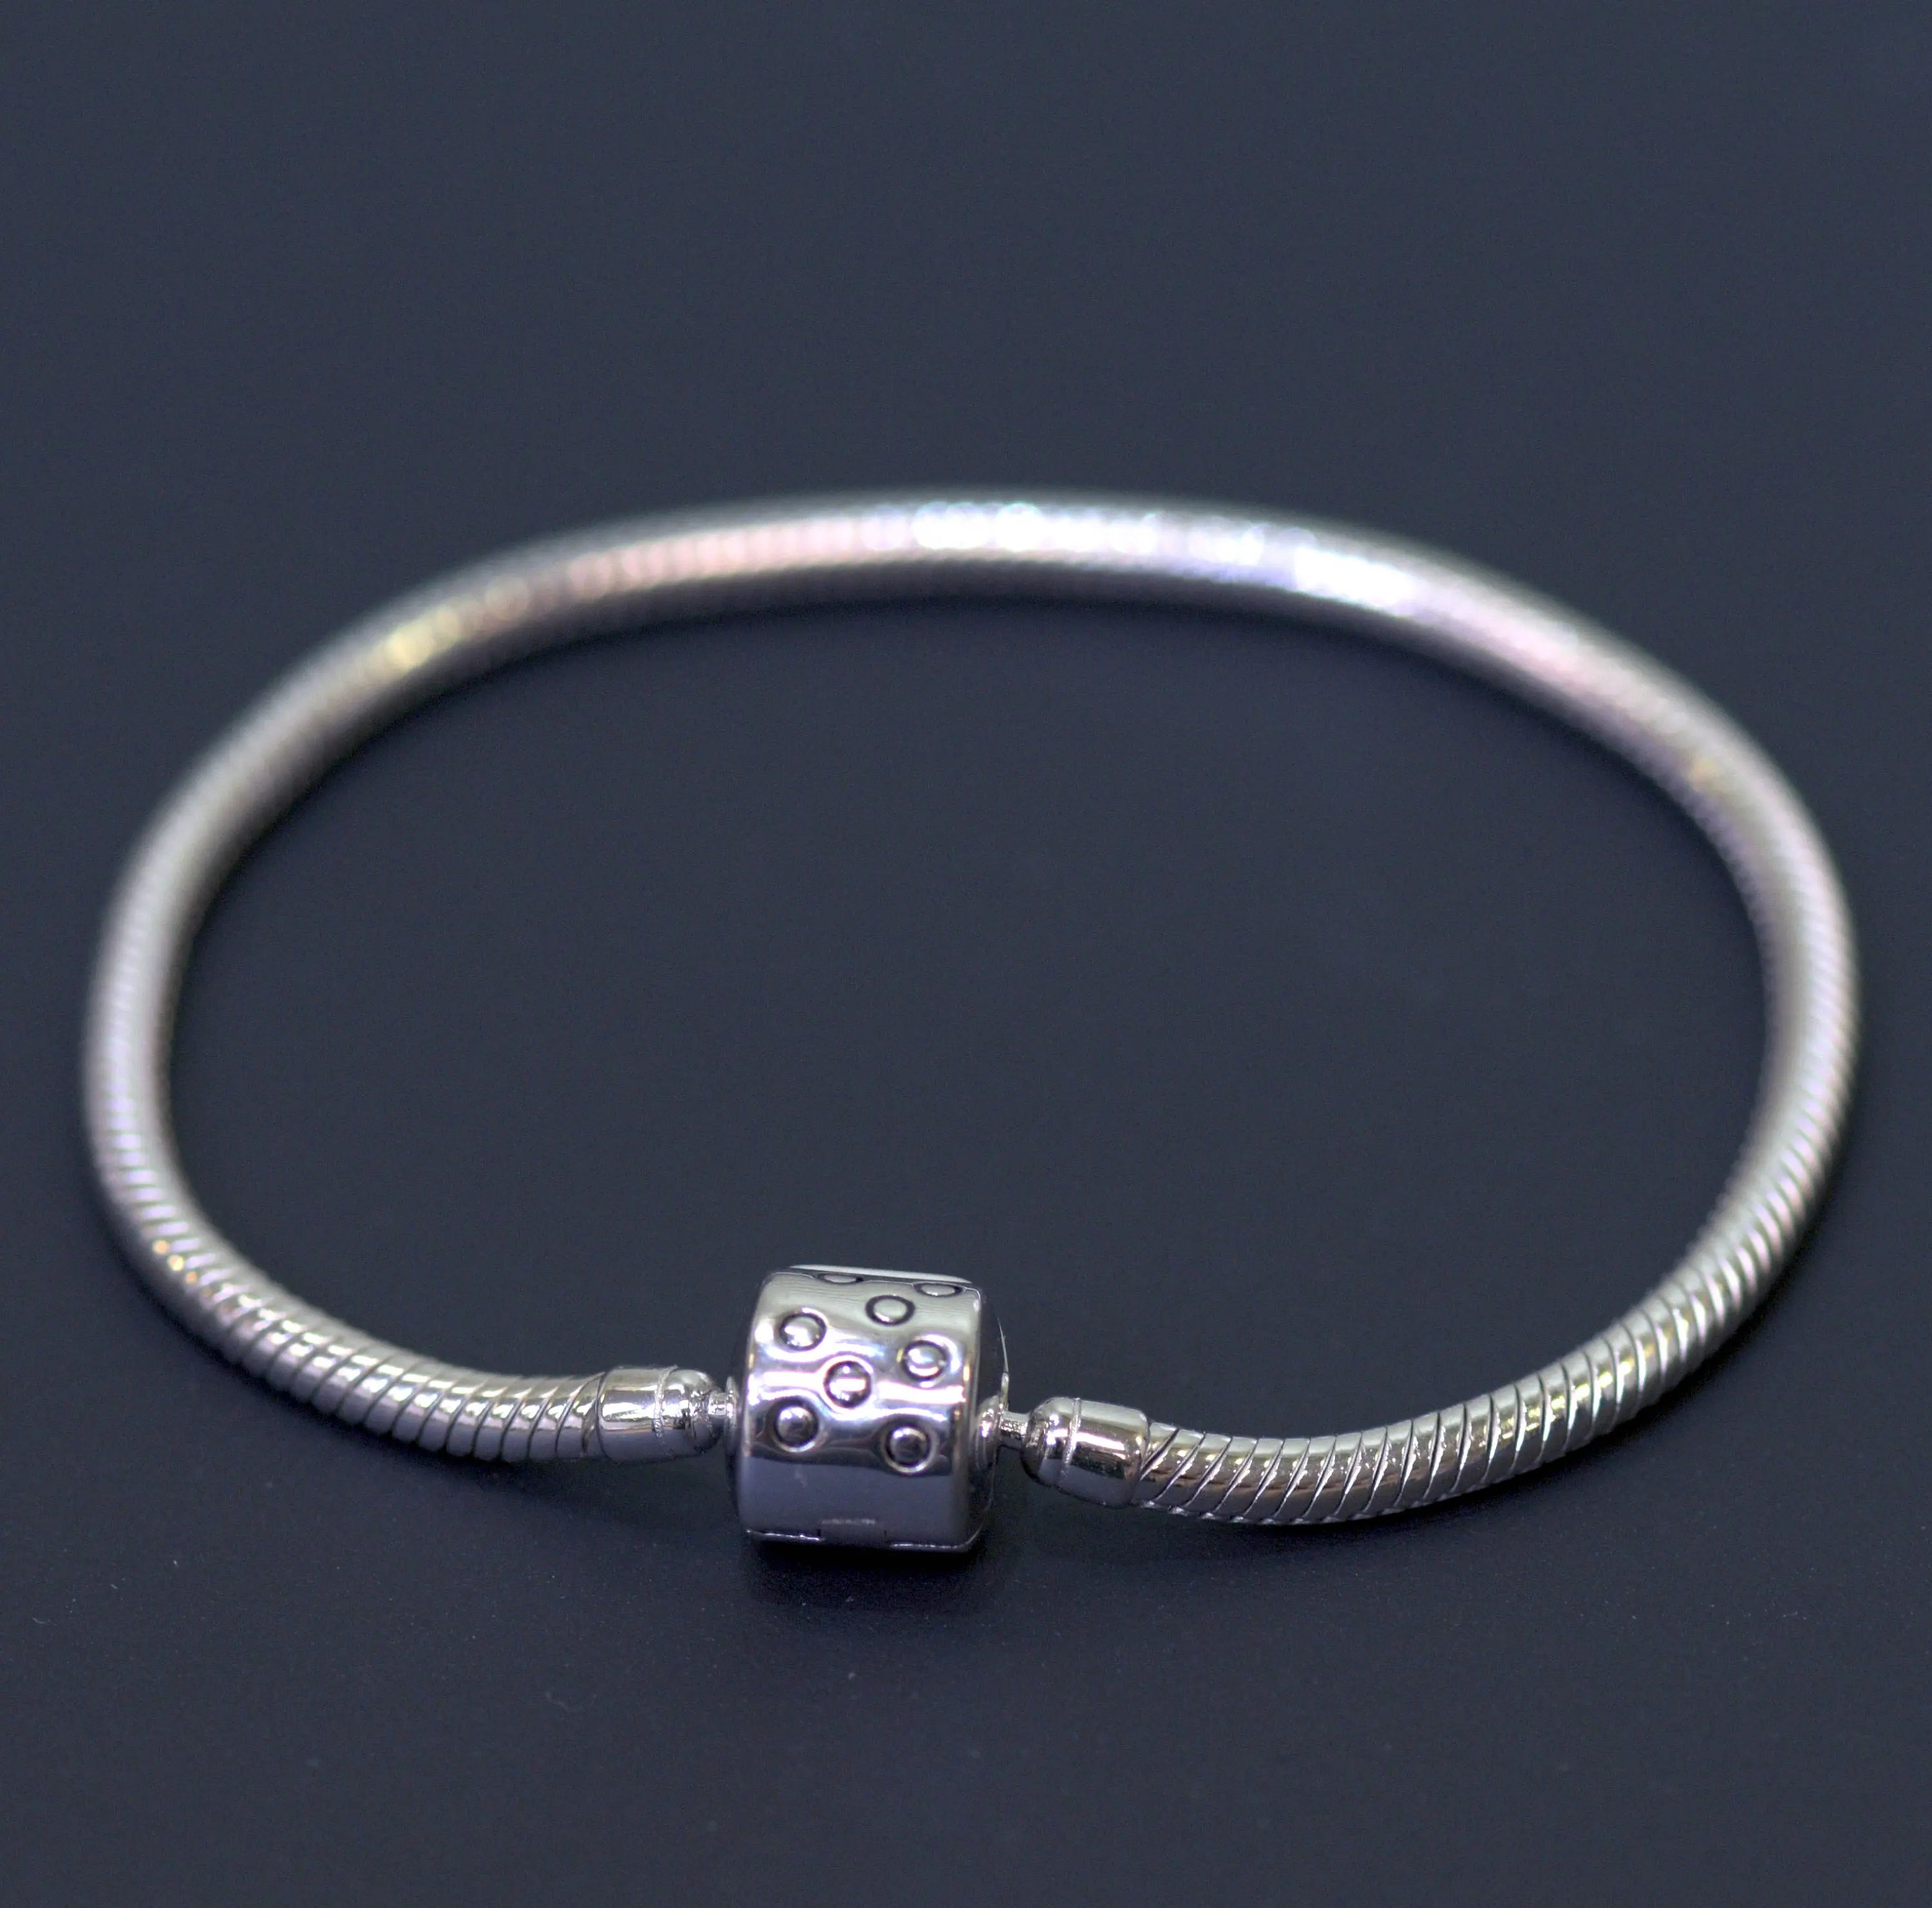 Staggering Mom Custom Made Bracelets Create Your Own Real Silver Custom Personalized Jewelry Supply Create Your Own Real Silver Custom Bracelets custom Custom Charm Bracelets